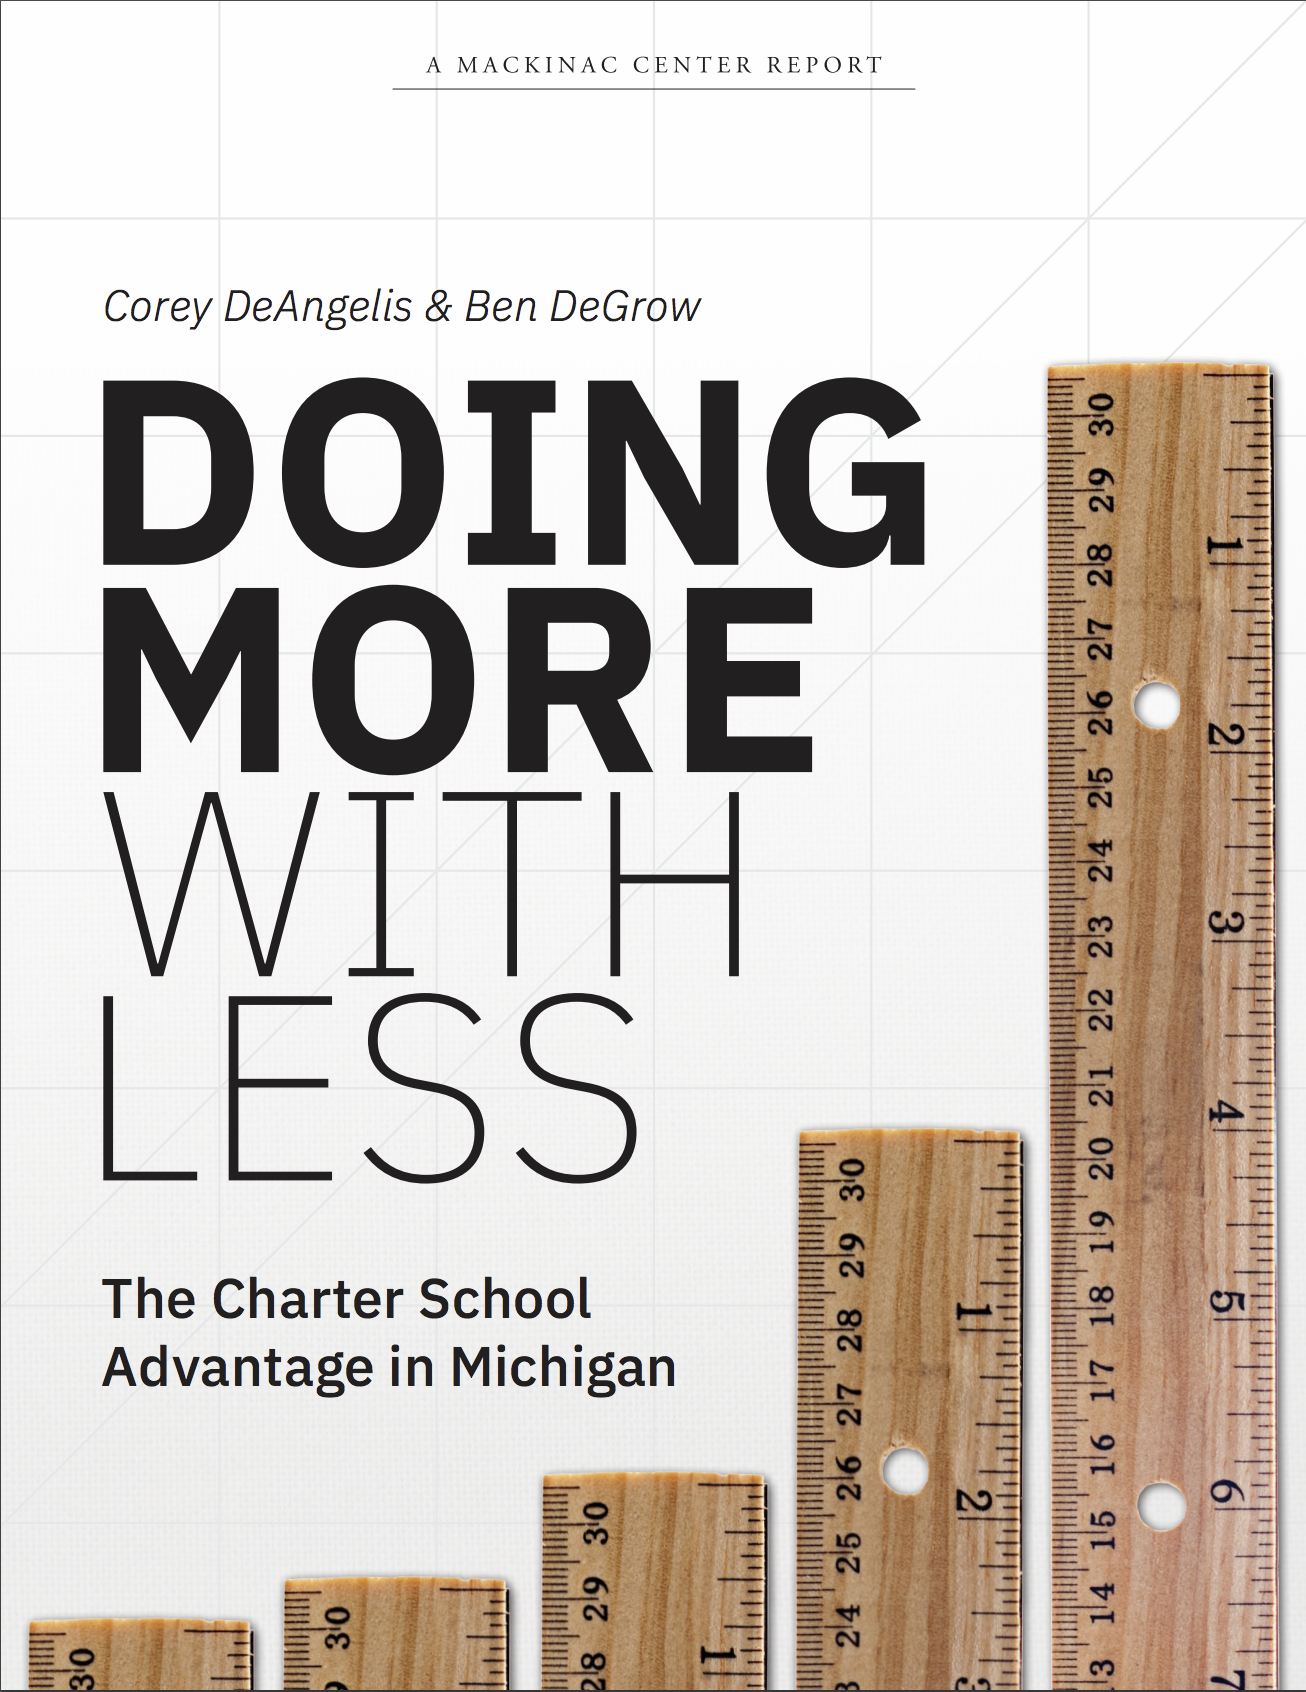 Better Fiscal Outcomes - Public charter schools in Michigan are more cost effective and produce a larger return on investment for taxpayers. These results persist even after controlling for student demographic factors that research suggests impacts both a school's funding levels and its average student test scores.